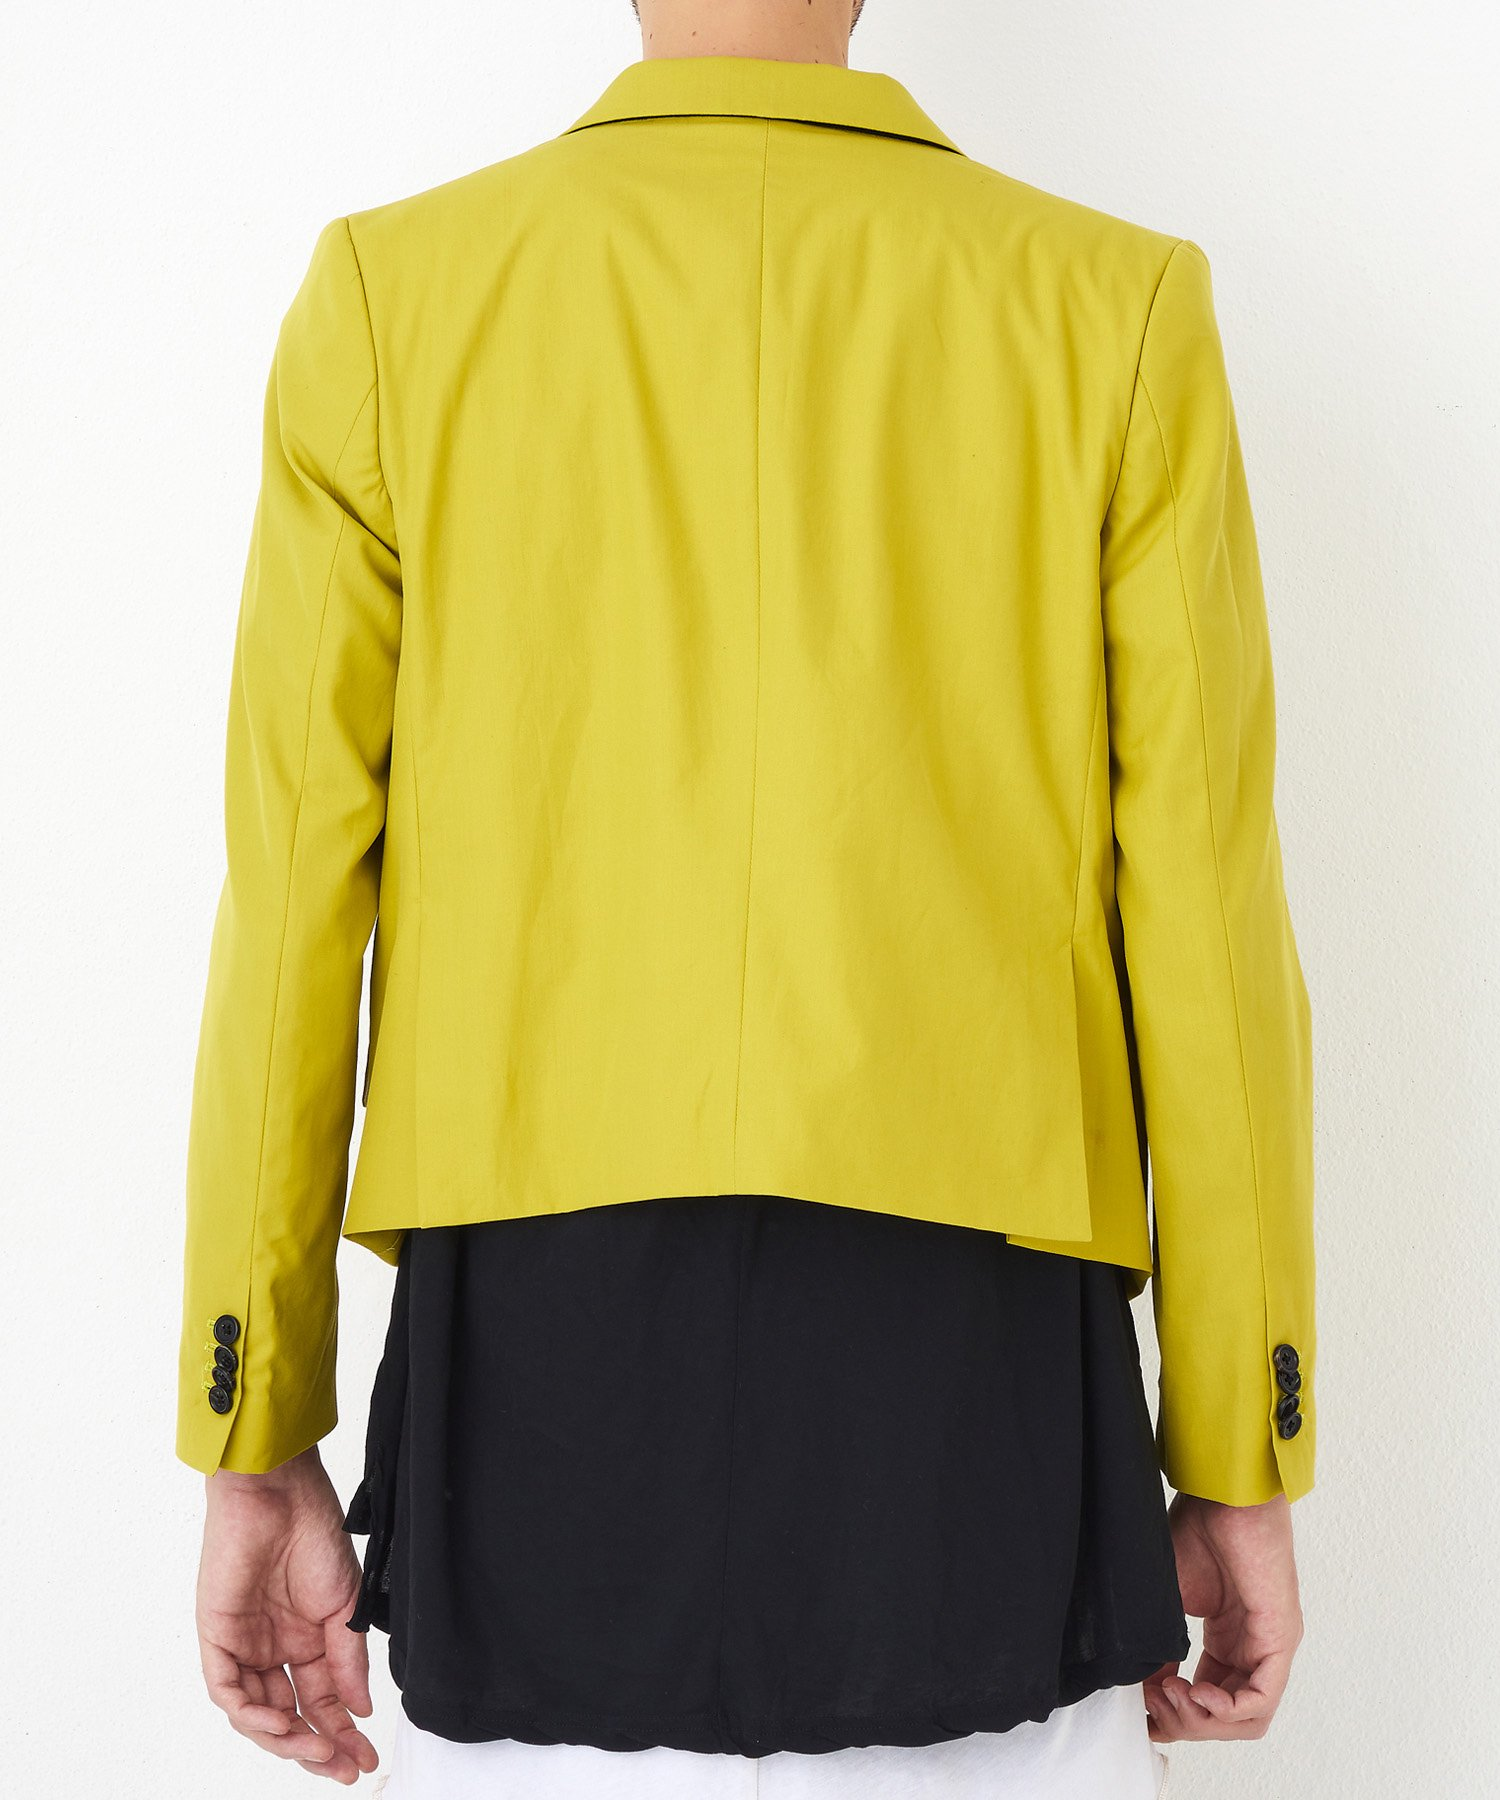 W TAILORED JKT【Yellow】